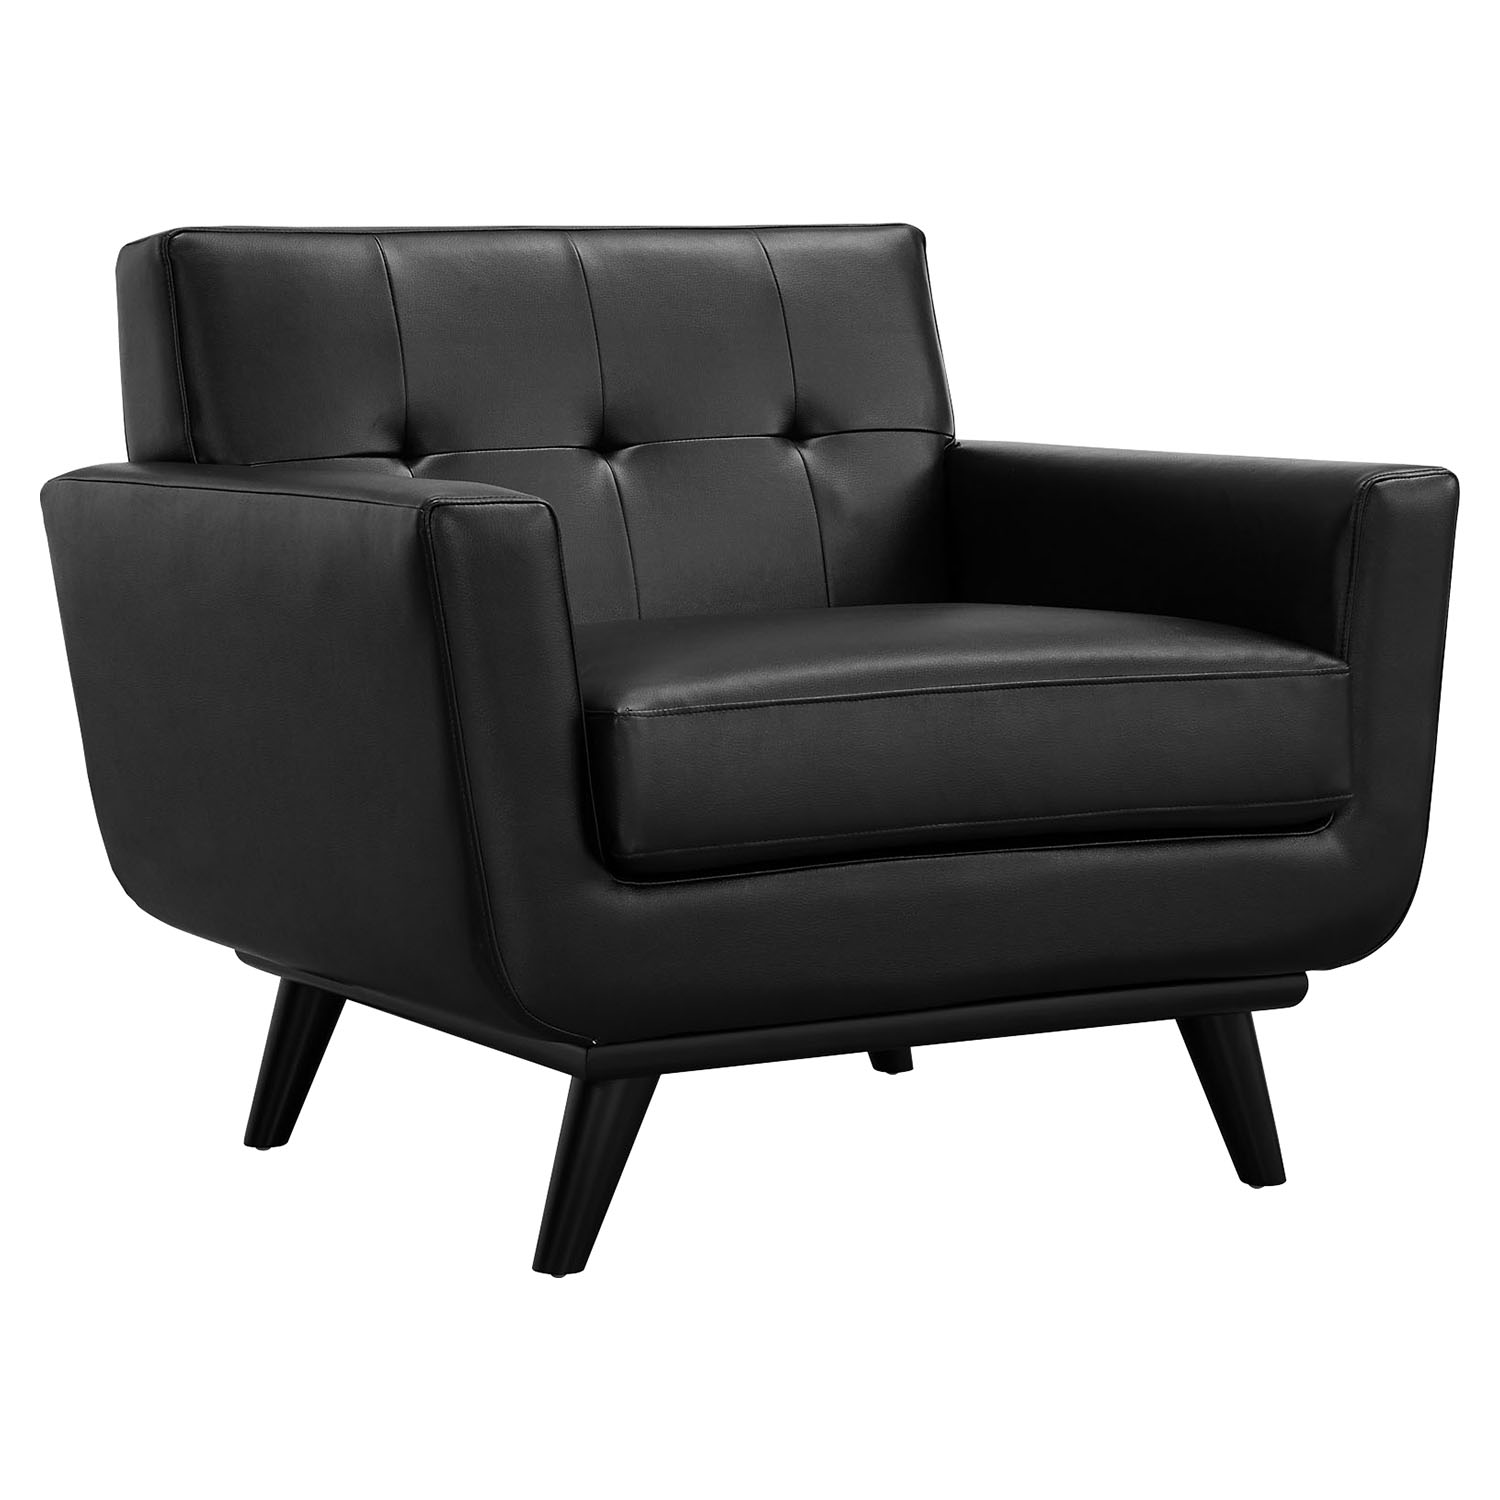 Engage 3 Pieces Tufted Leather Sofa Set - Black - EEI-1763-BLK-SET